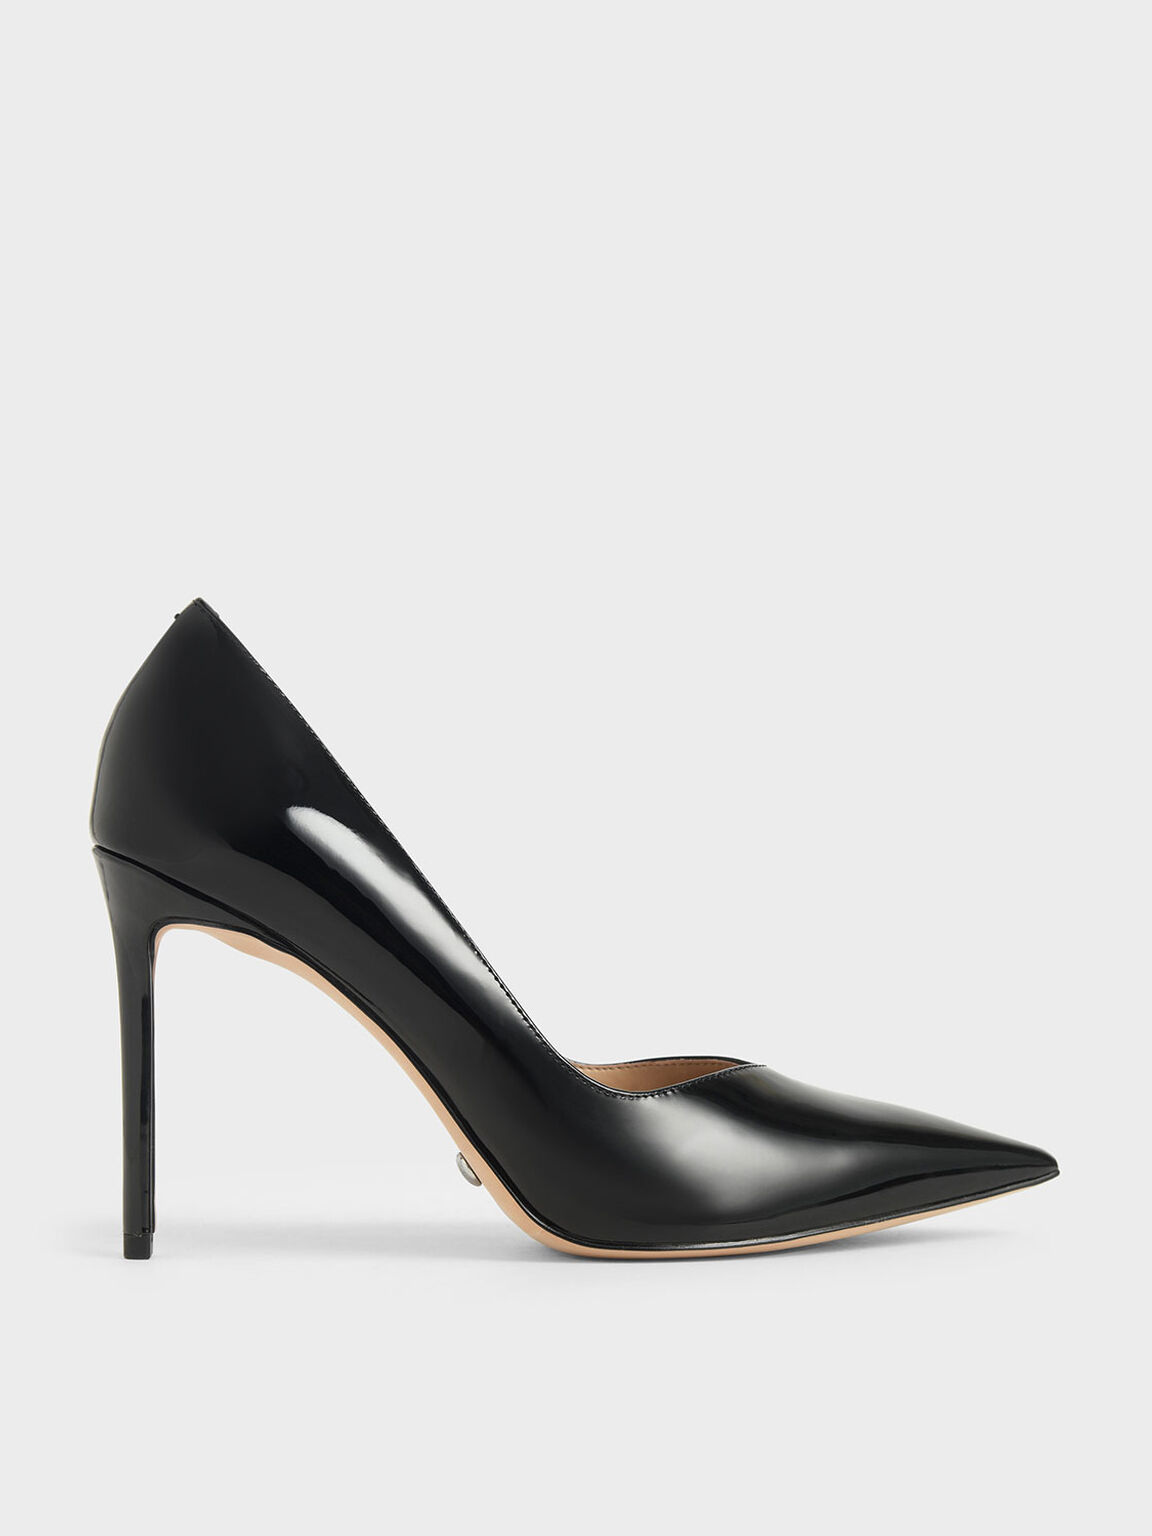 Patent Leather Pointed Toe Pumps, Black, hi-res